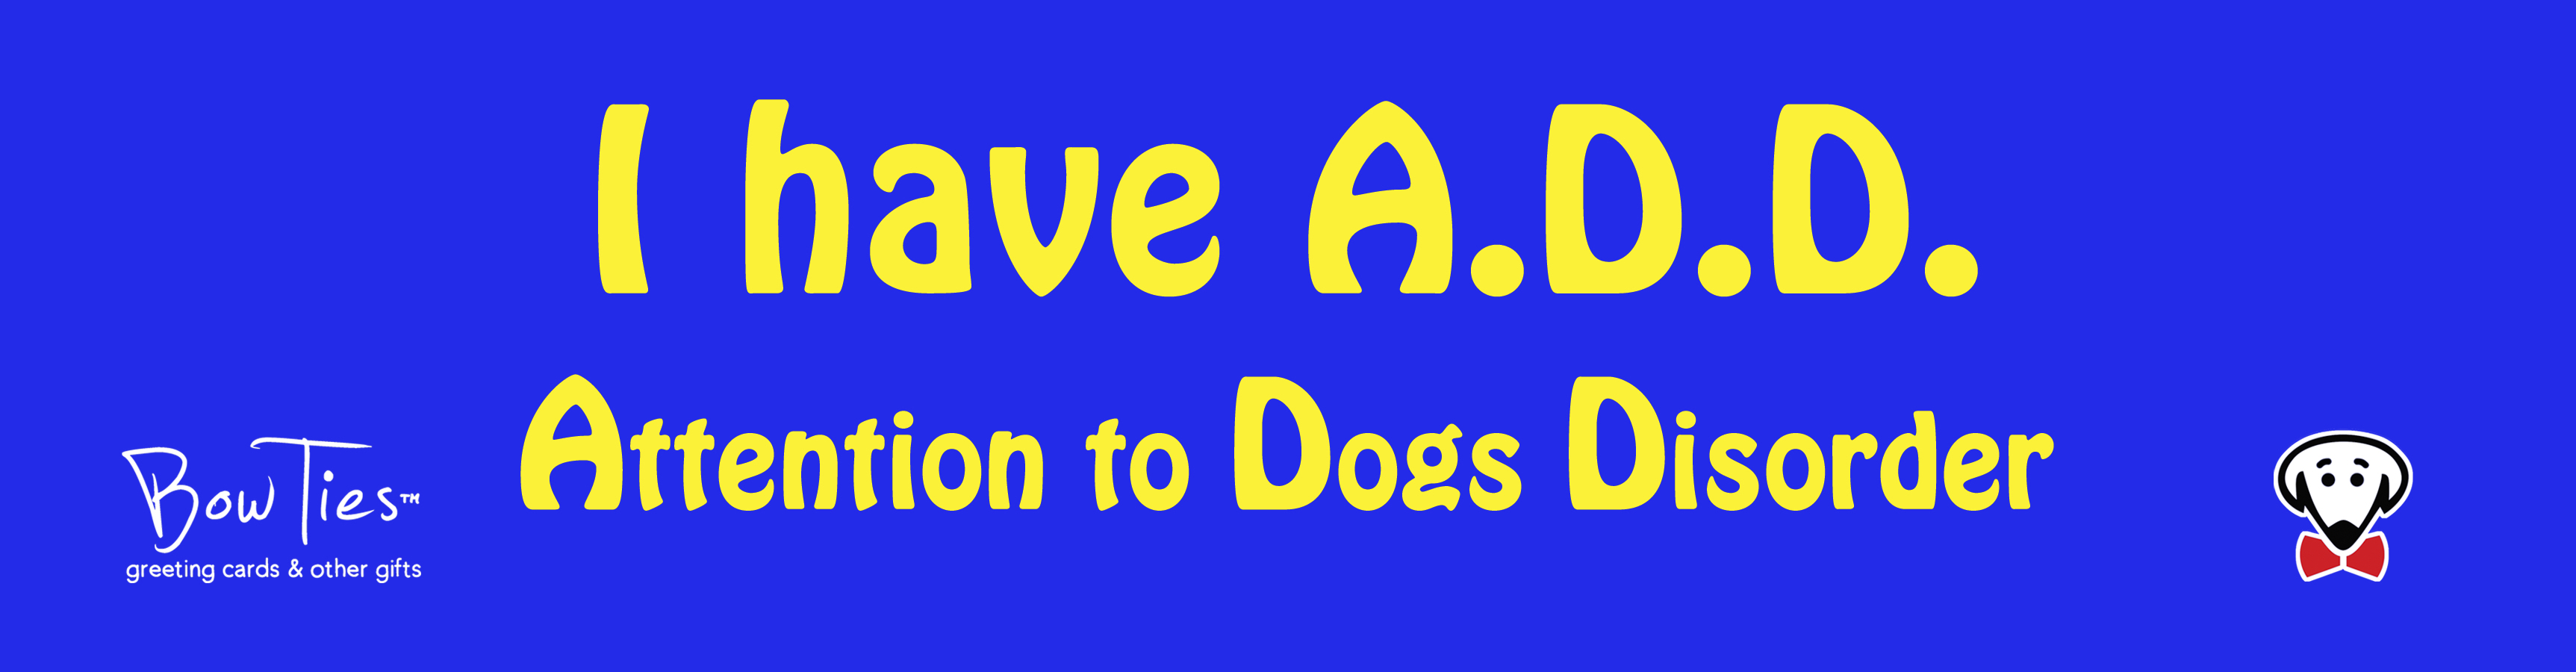 I have A.D.D. Attention to Dogs Disorder. – sticker